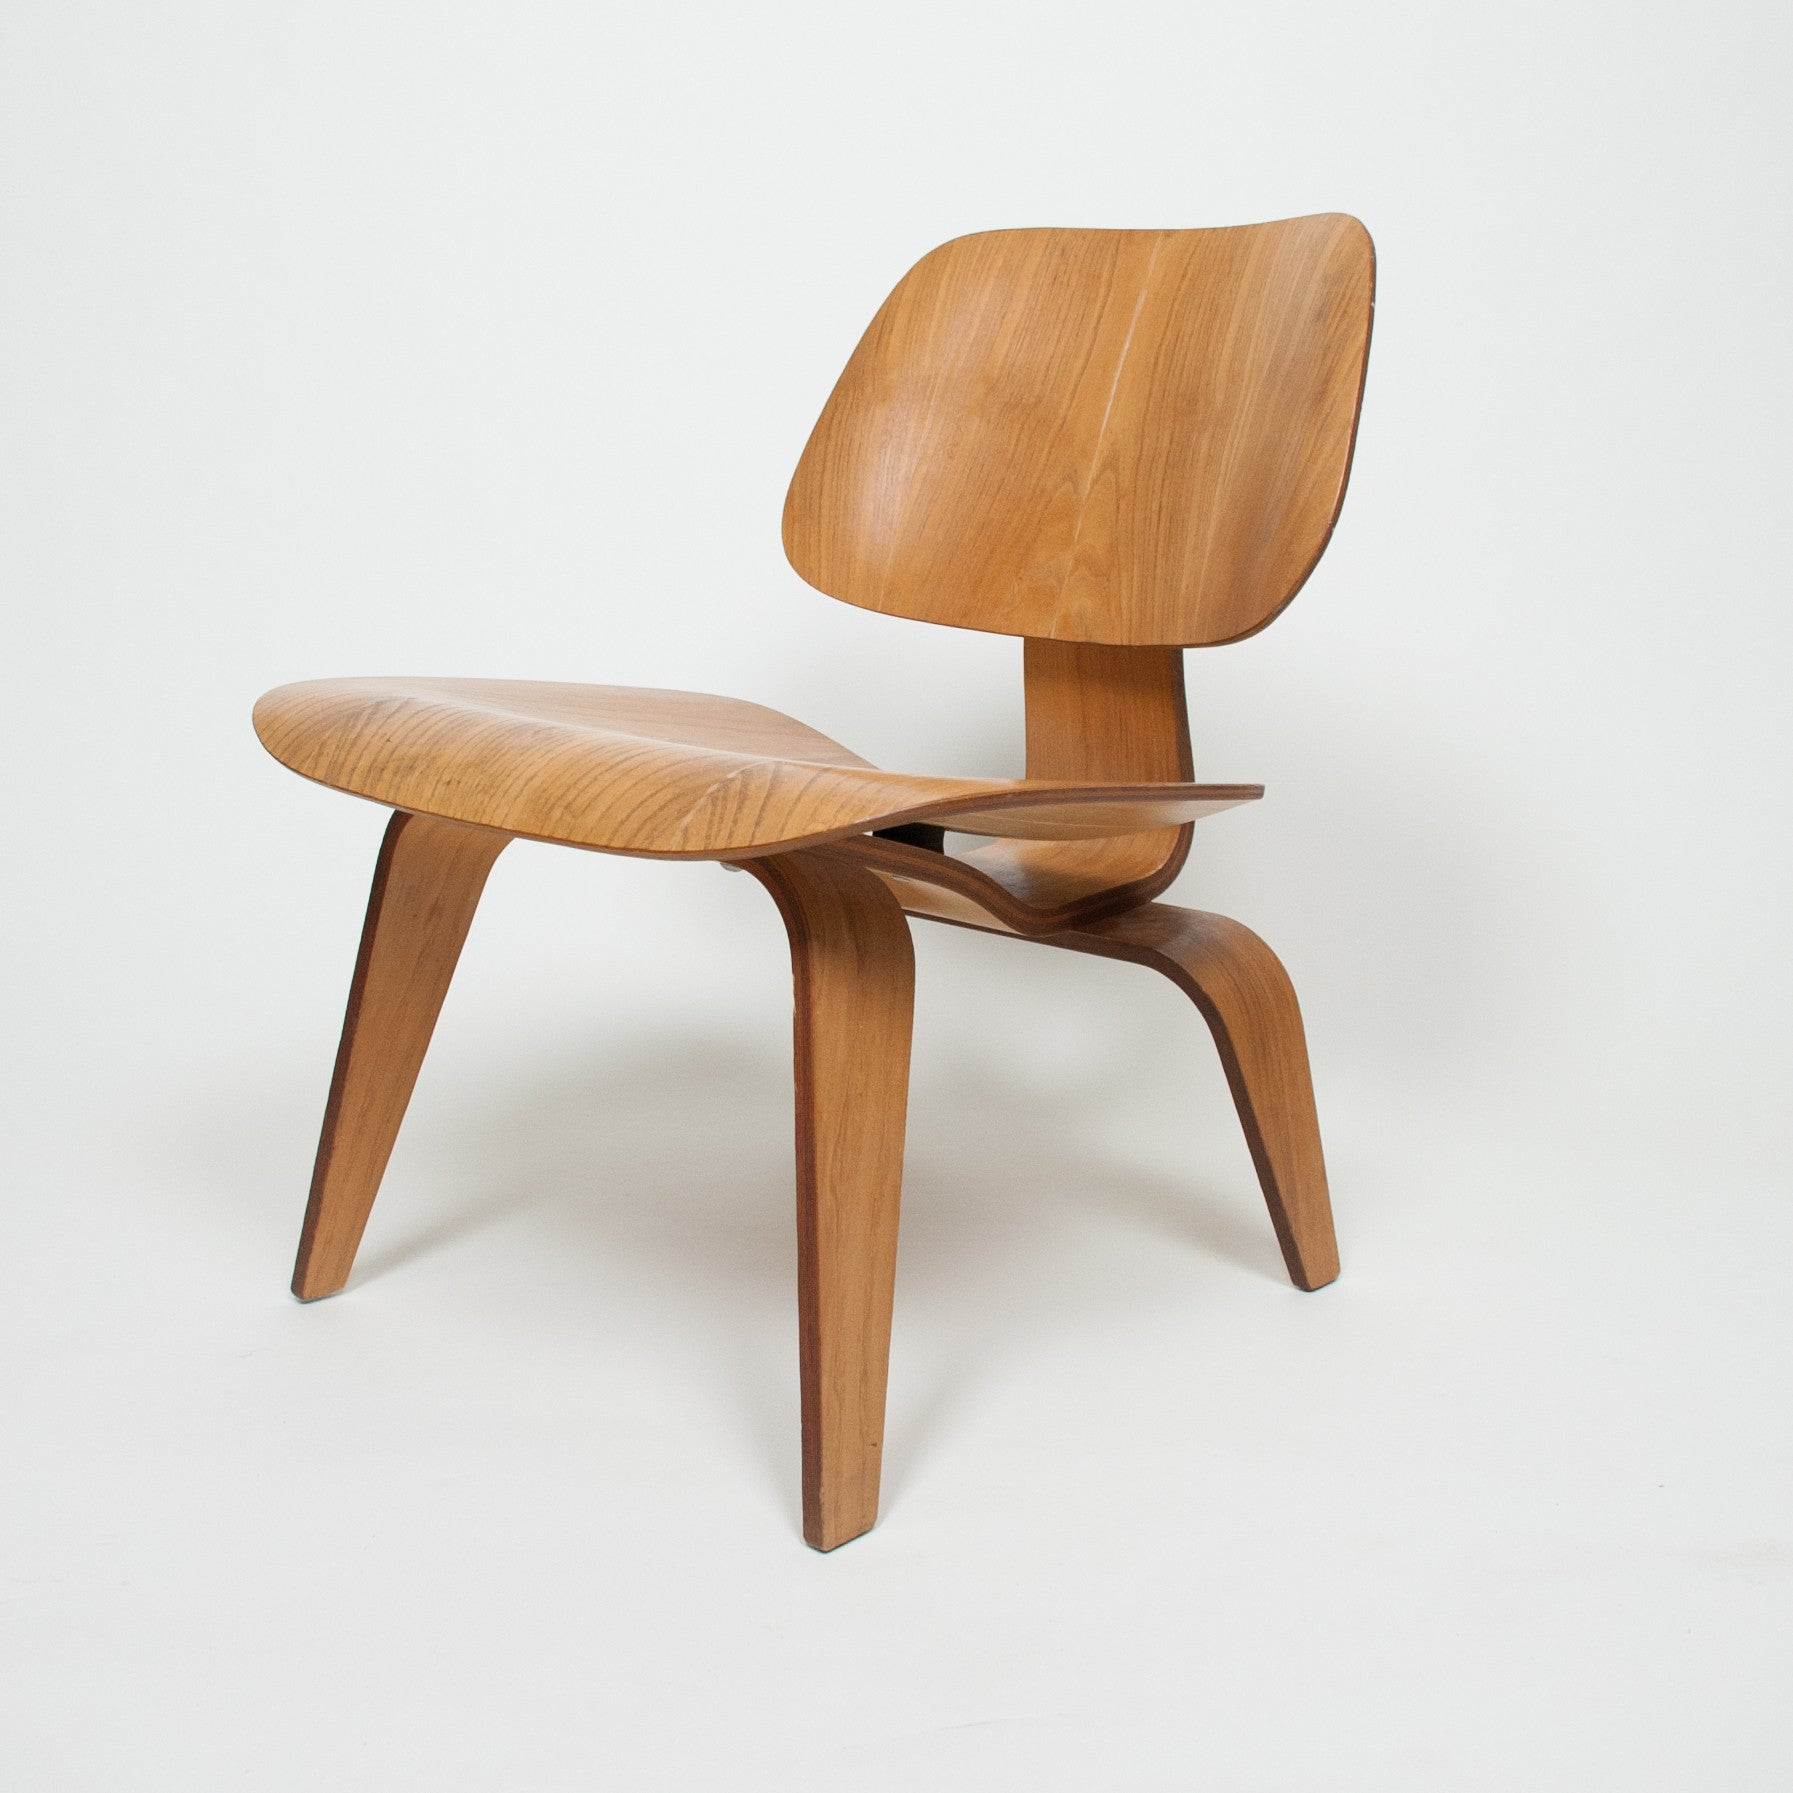 Herman miller plywood lounge chair - Eames Herman Miller Early 1950 S Lcw Plywood Lounge Chair Original Calico Ash